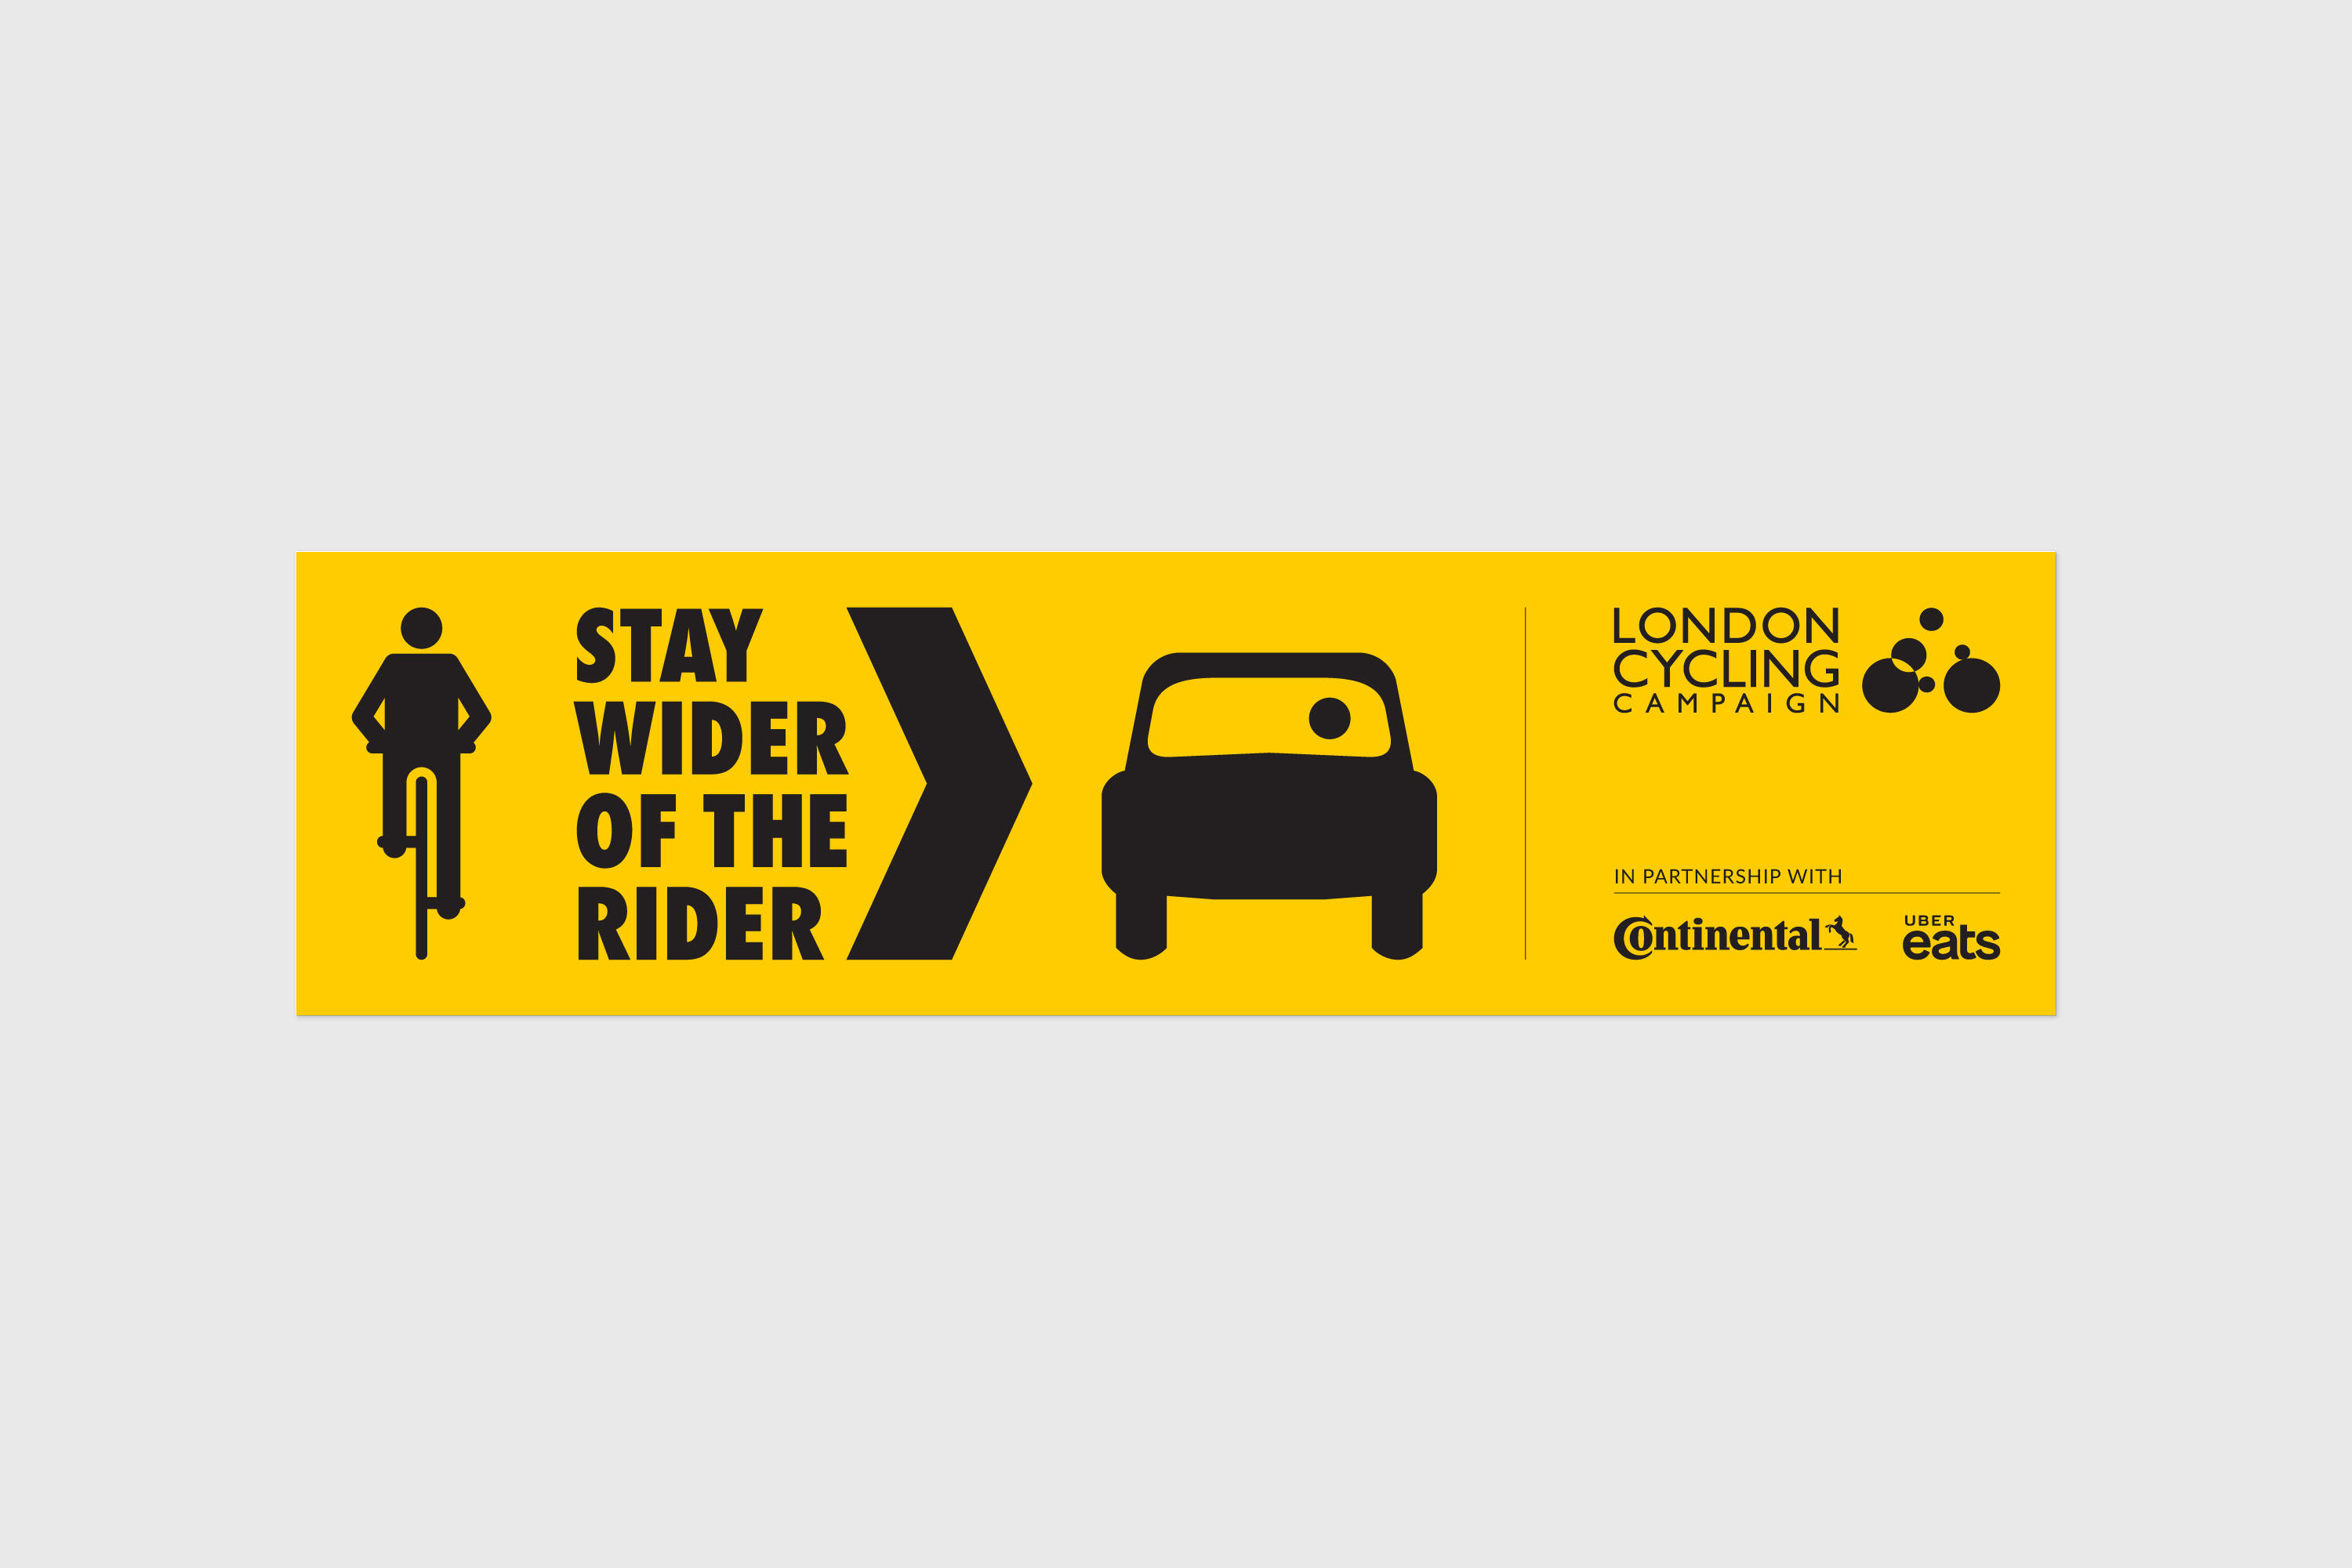 lcc18_staywider_car_sticker